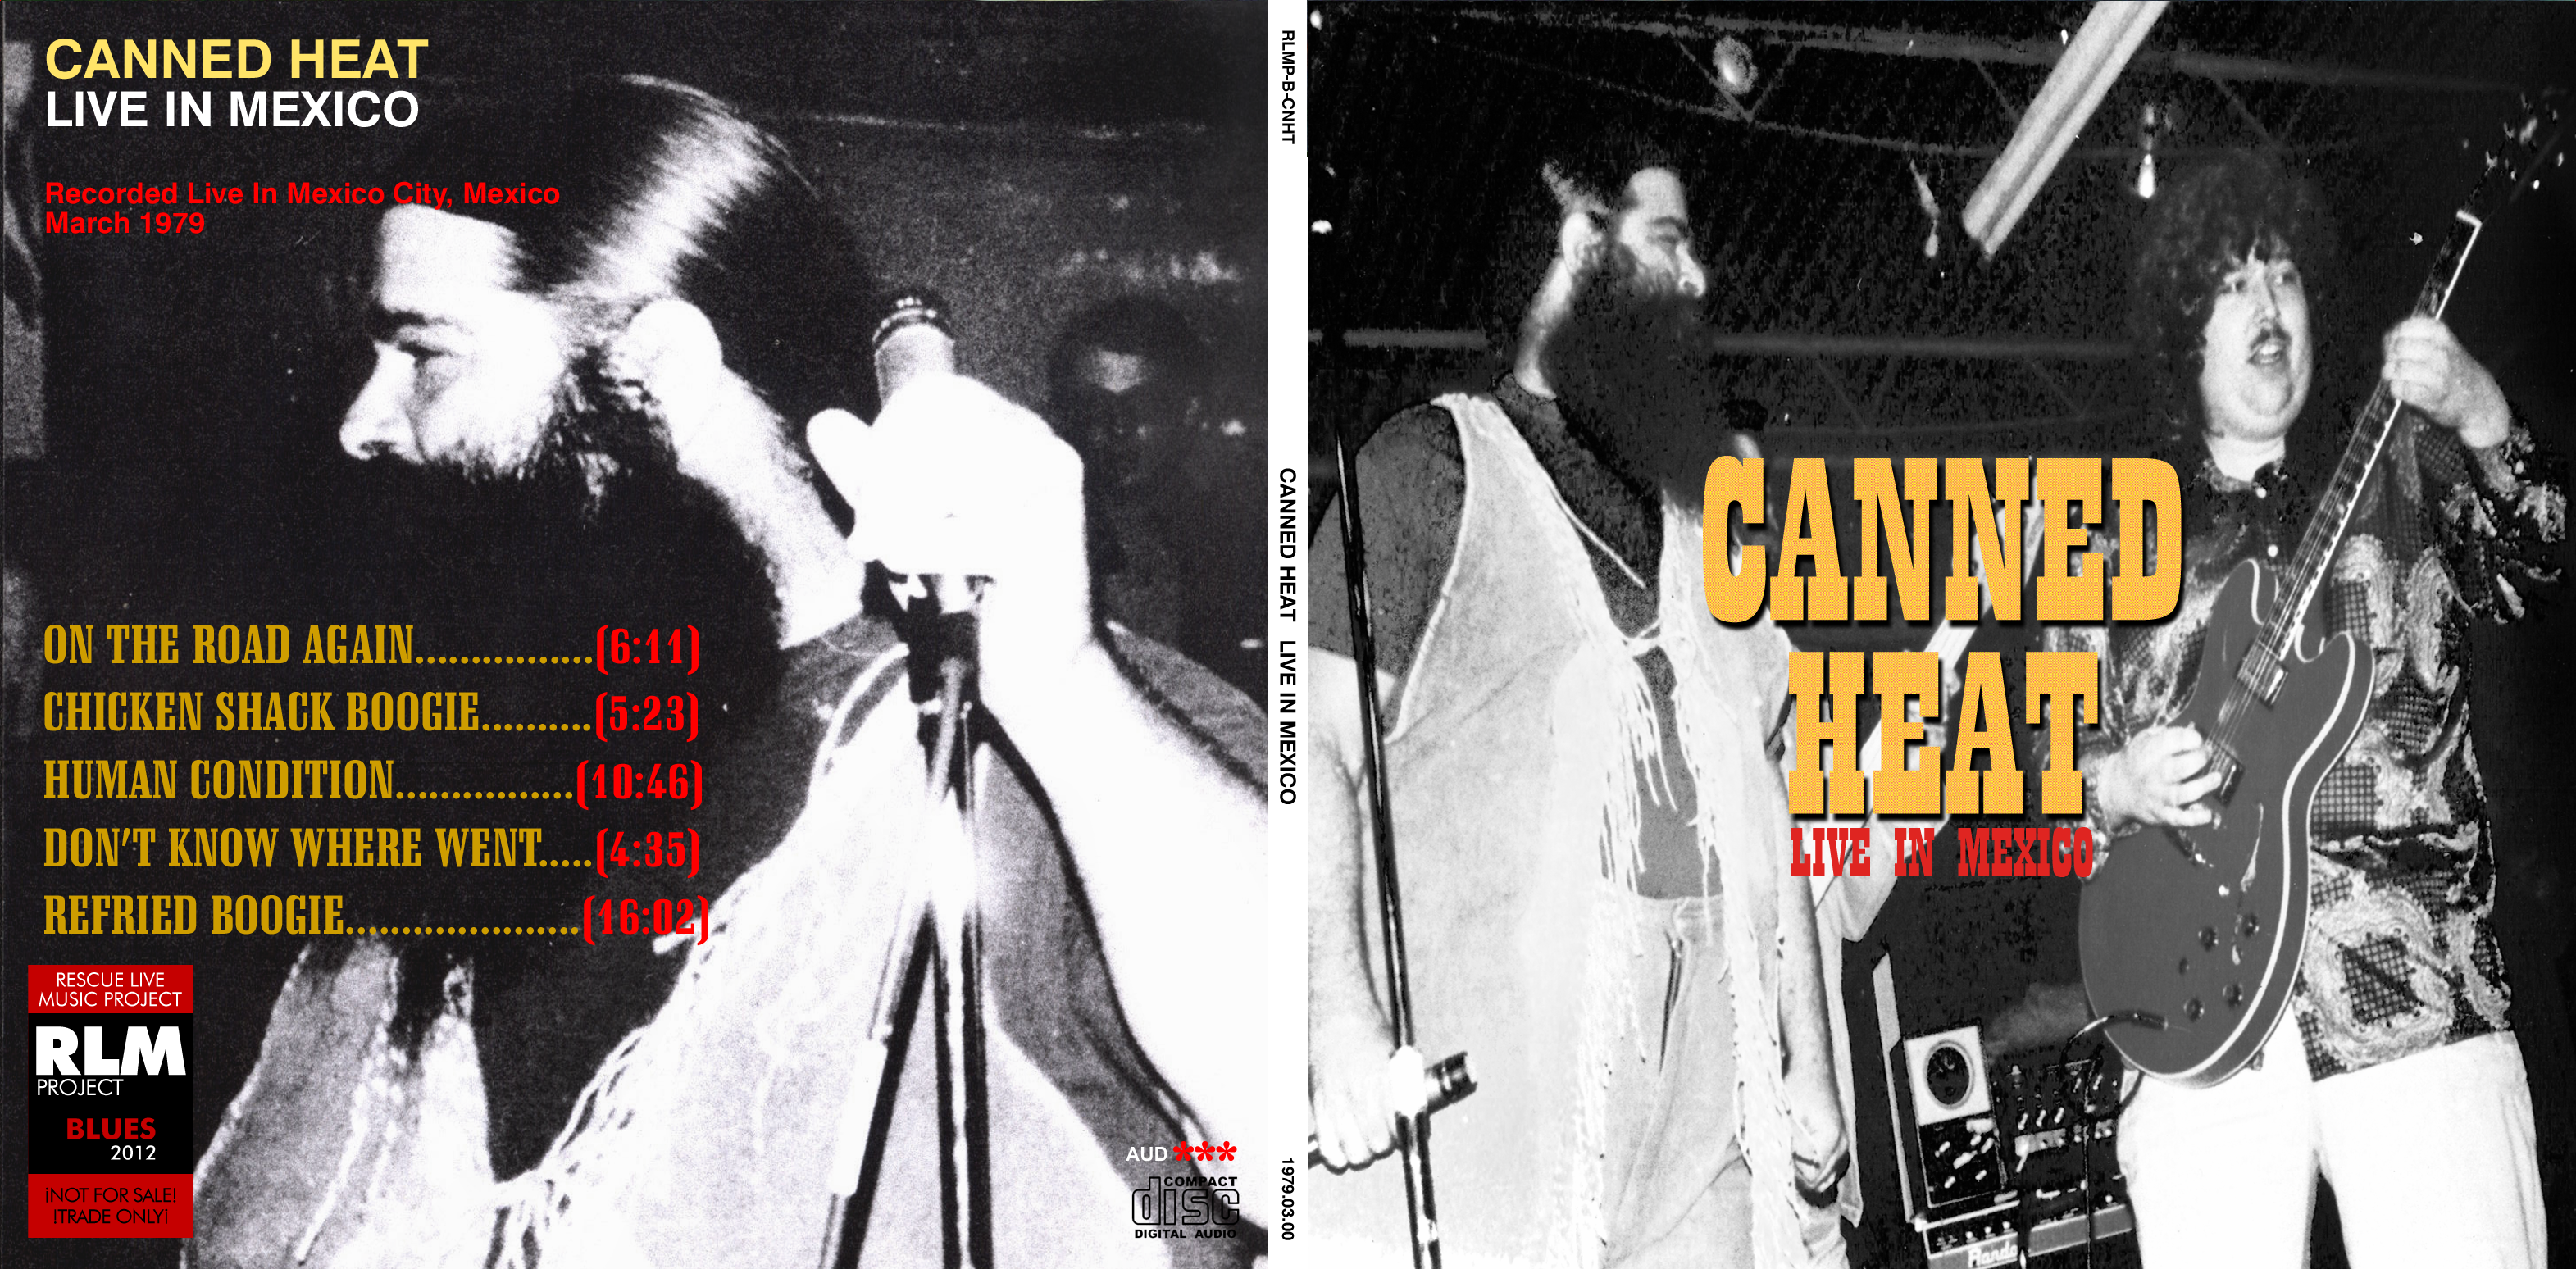 CannedHeat1979-03MexicoCityMexico (1).png